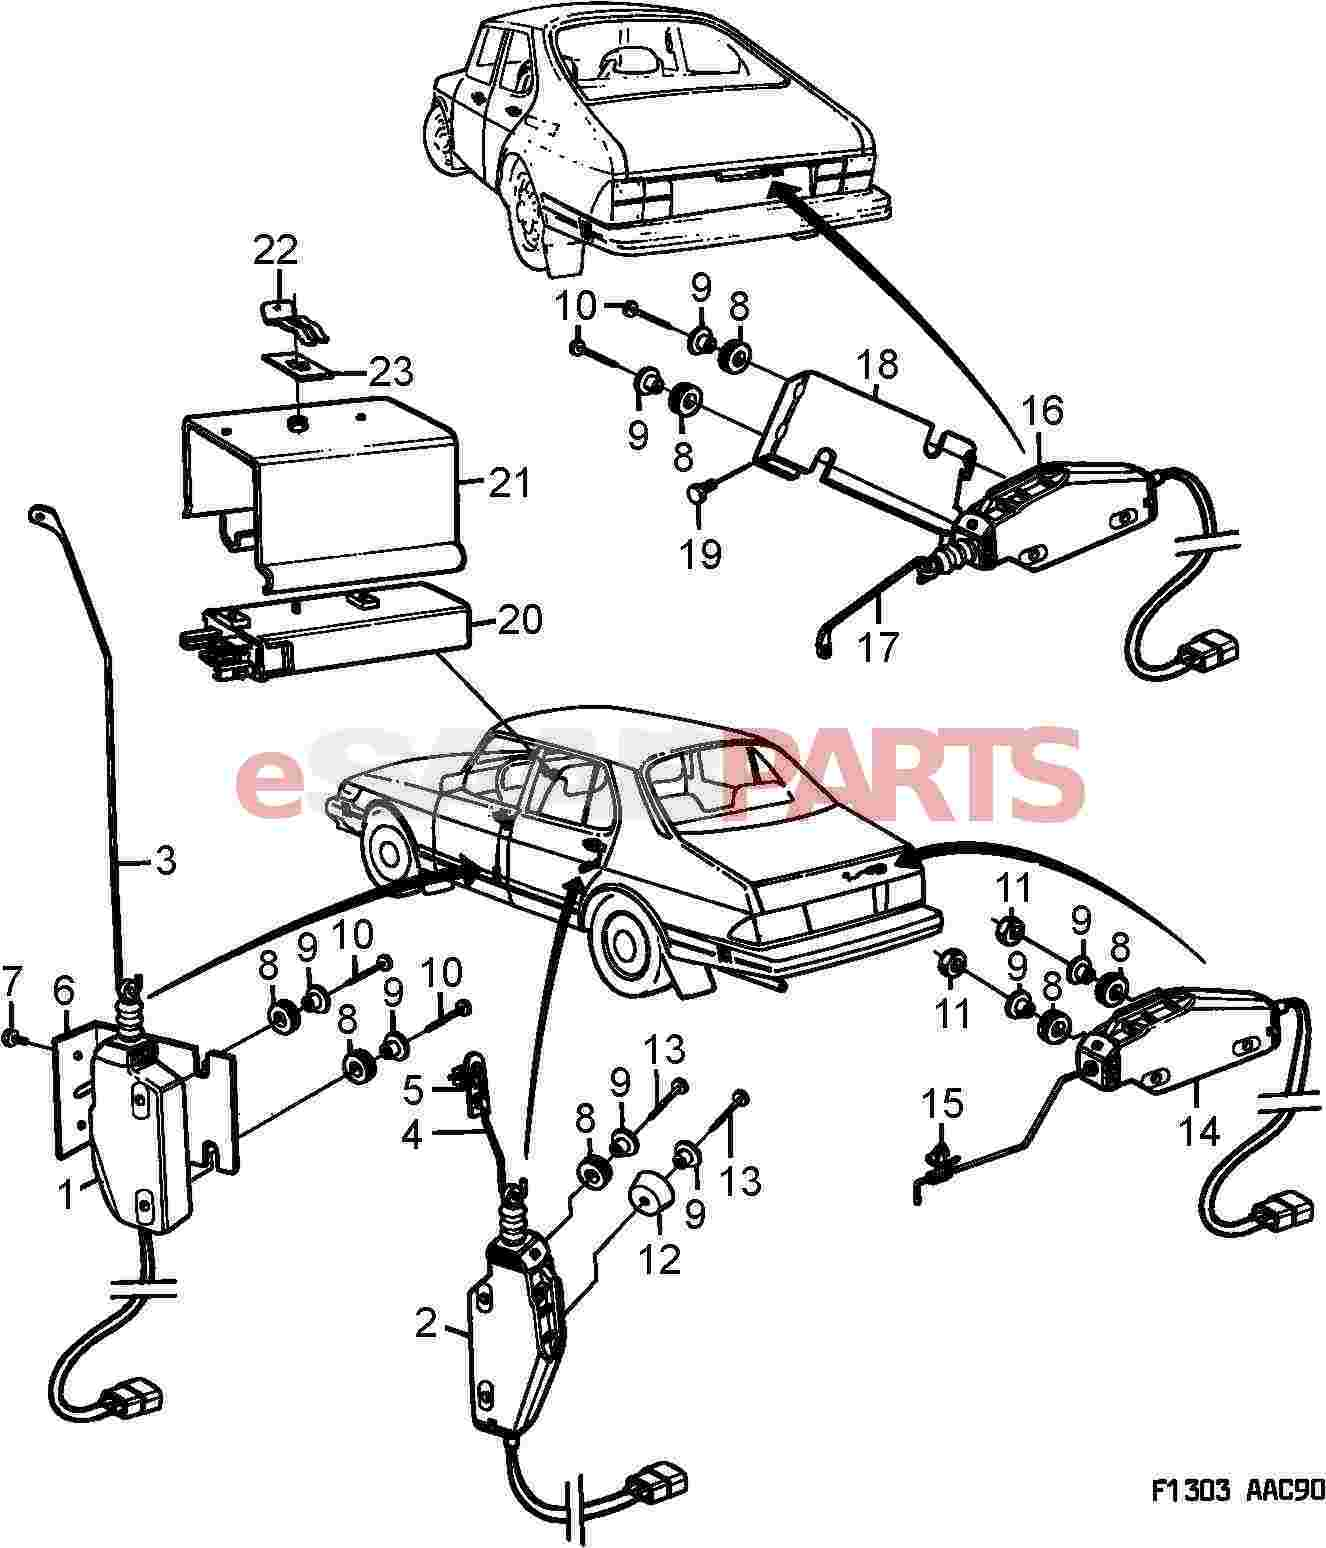 8591224] saab electrical motor genuine saab parts from esaabparts com saab 95 wiring diagram saab 900 central locking wiring diagram #26